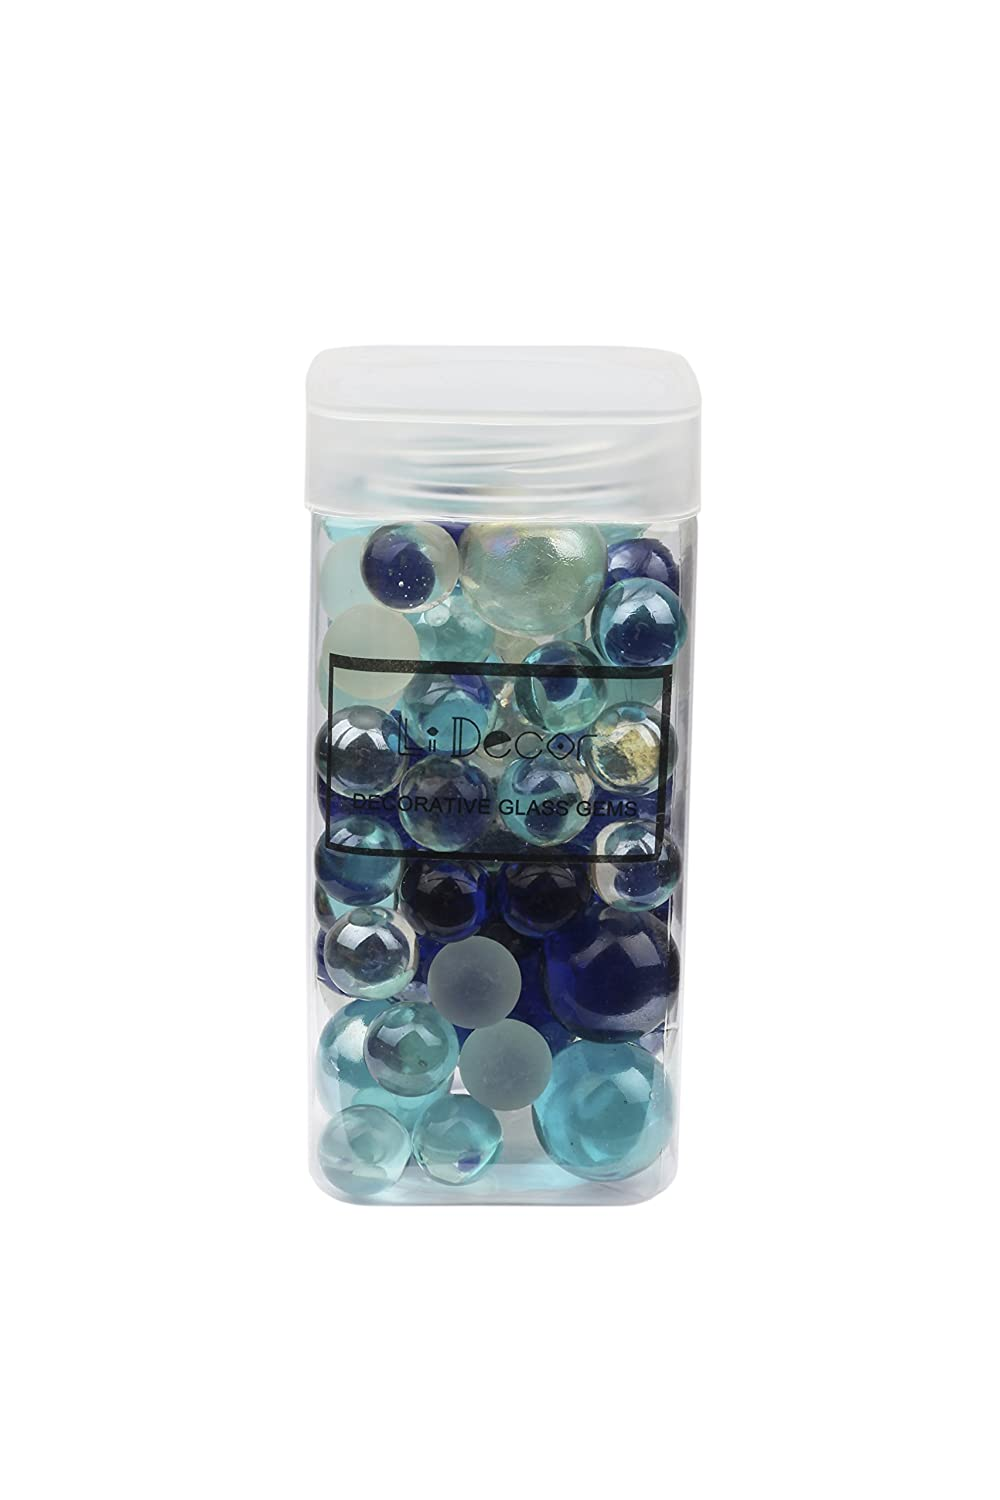 Home Decor Glass Marbles Mixed Blue 1.3 Pounds Bottle Non-Toxic Aquarium Decor Party Decor Birthday Decor Flowerpot Decor Table Scatter Fish Bowl Beads Vase Fillers Colorful Smooth Fun